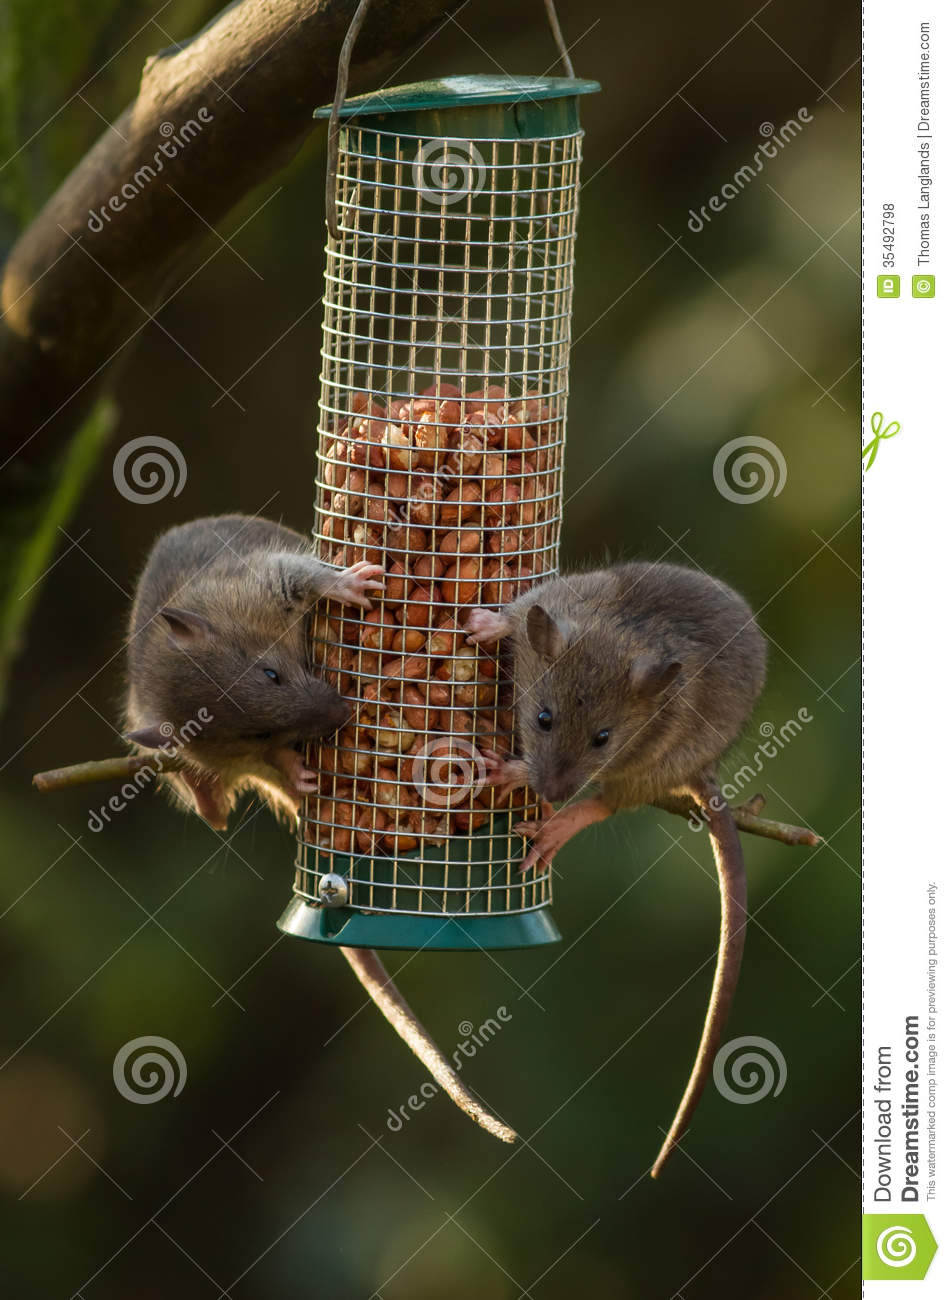 Rats On A Bird Feeder Royalty Free Stock Photos - Image: 35492798